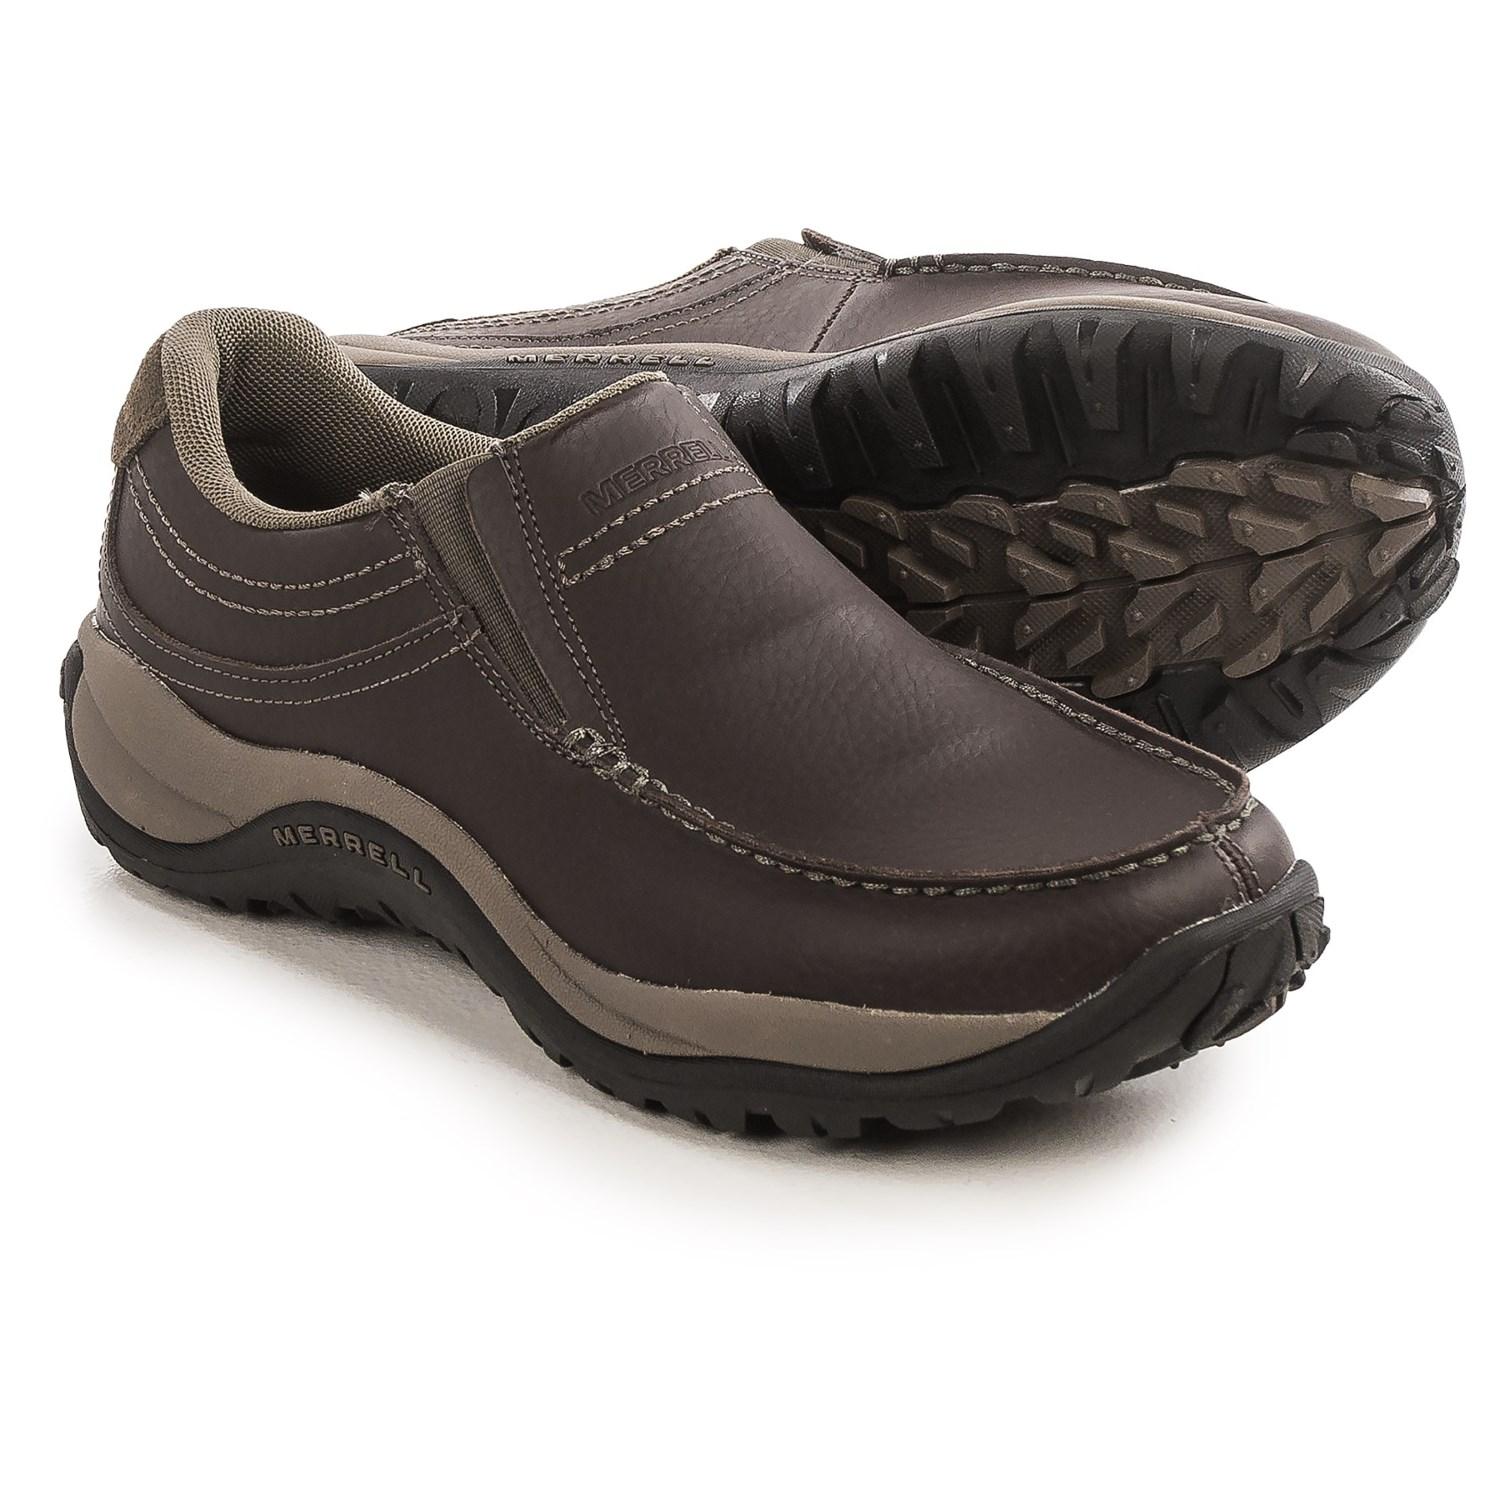 Merrell Espresso Shoes Leather